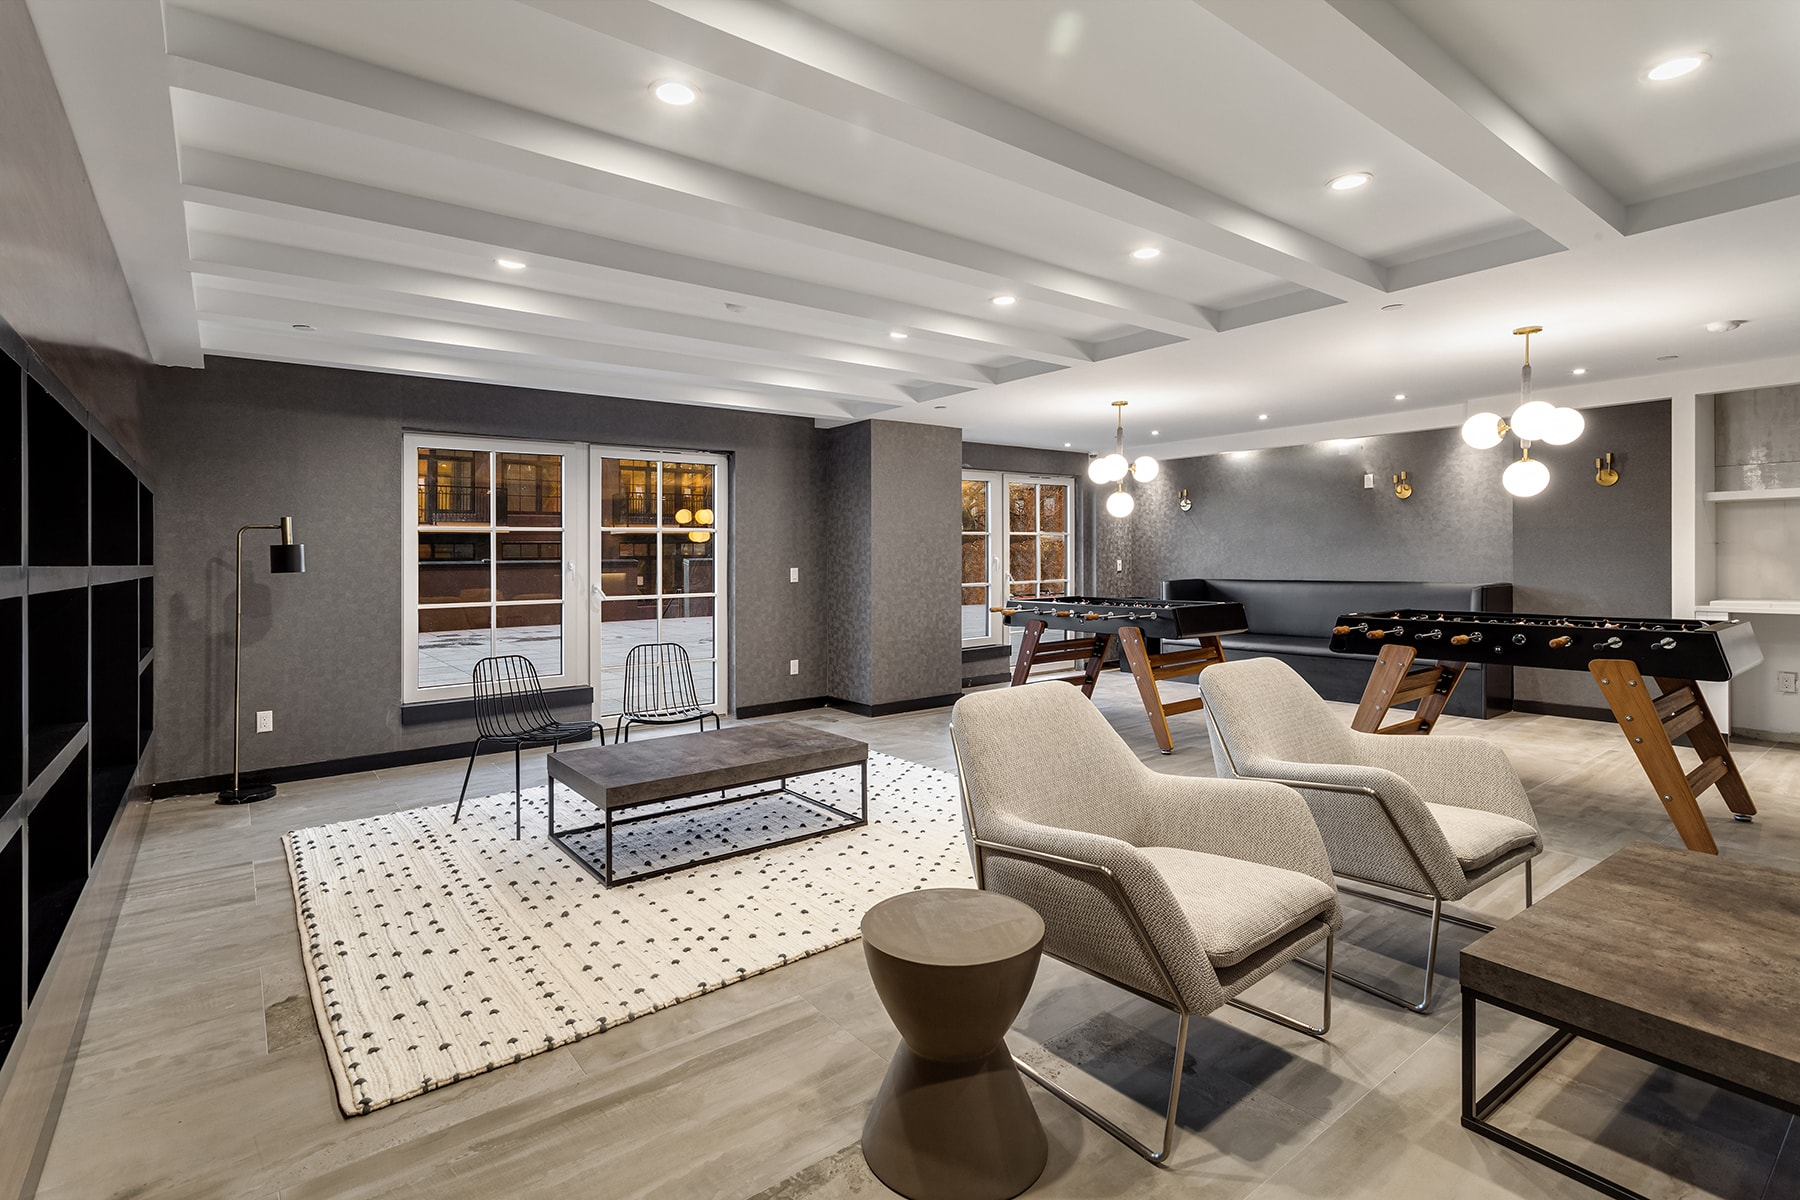 Common Lounge Area In Brooklyn Luxury Apartment Building Featuring Foosball Tables And Couches